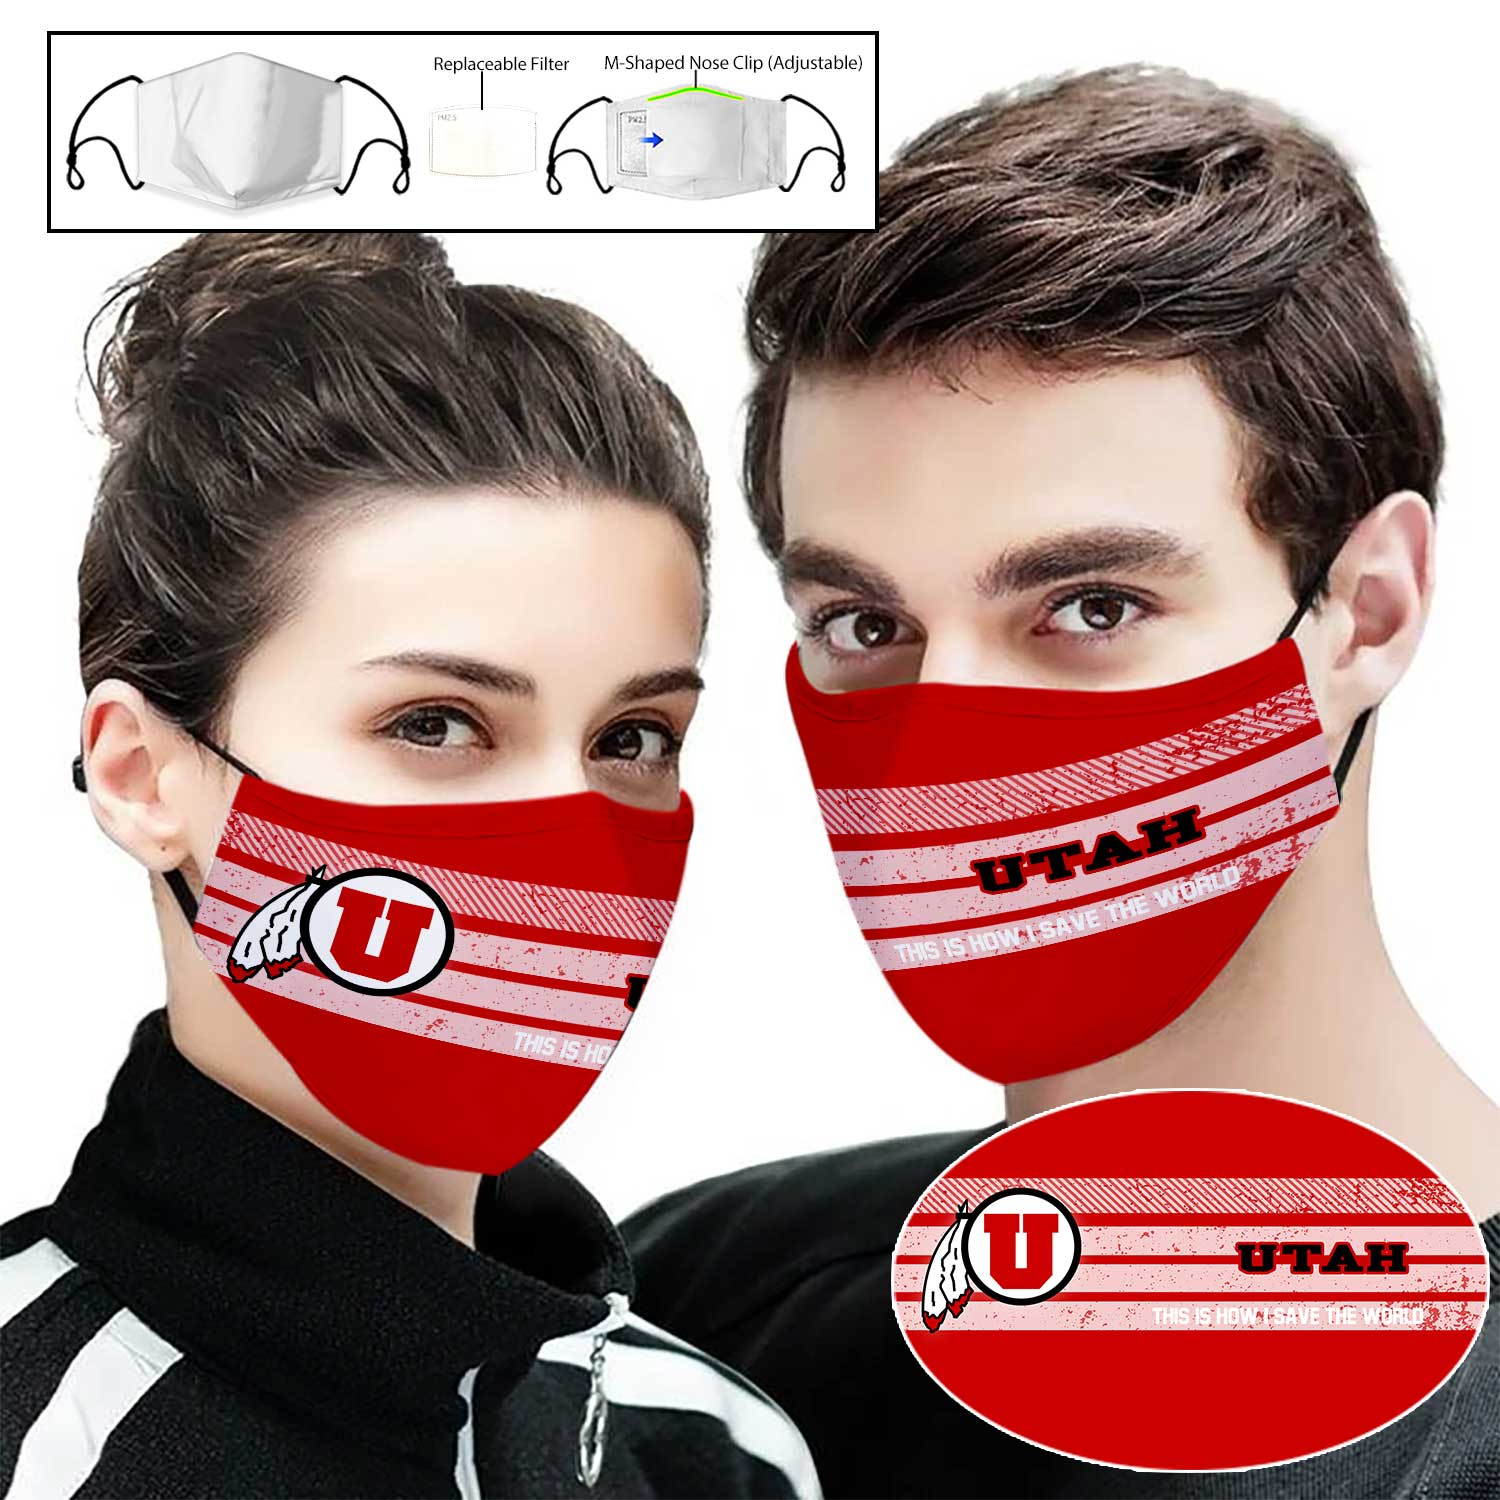 Utah utes this is how i save the world full printing face mask 1